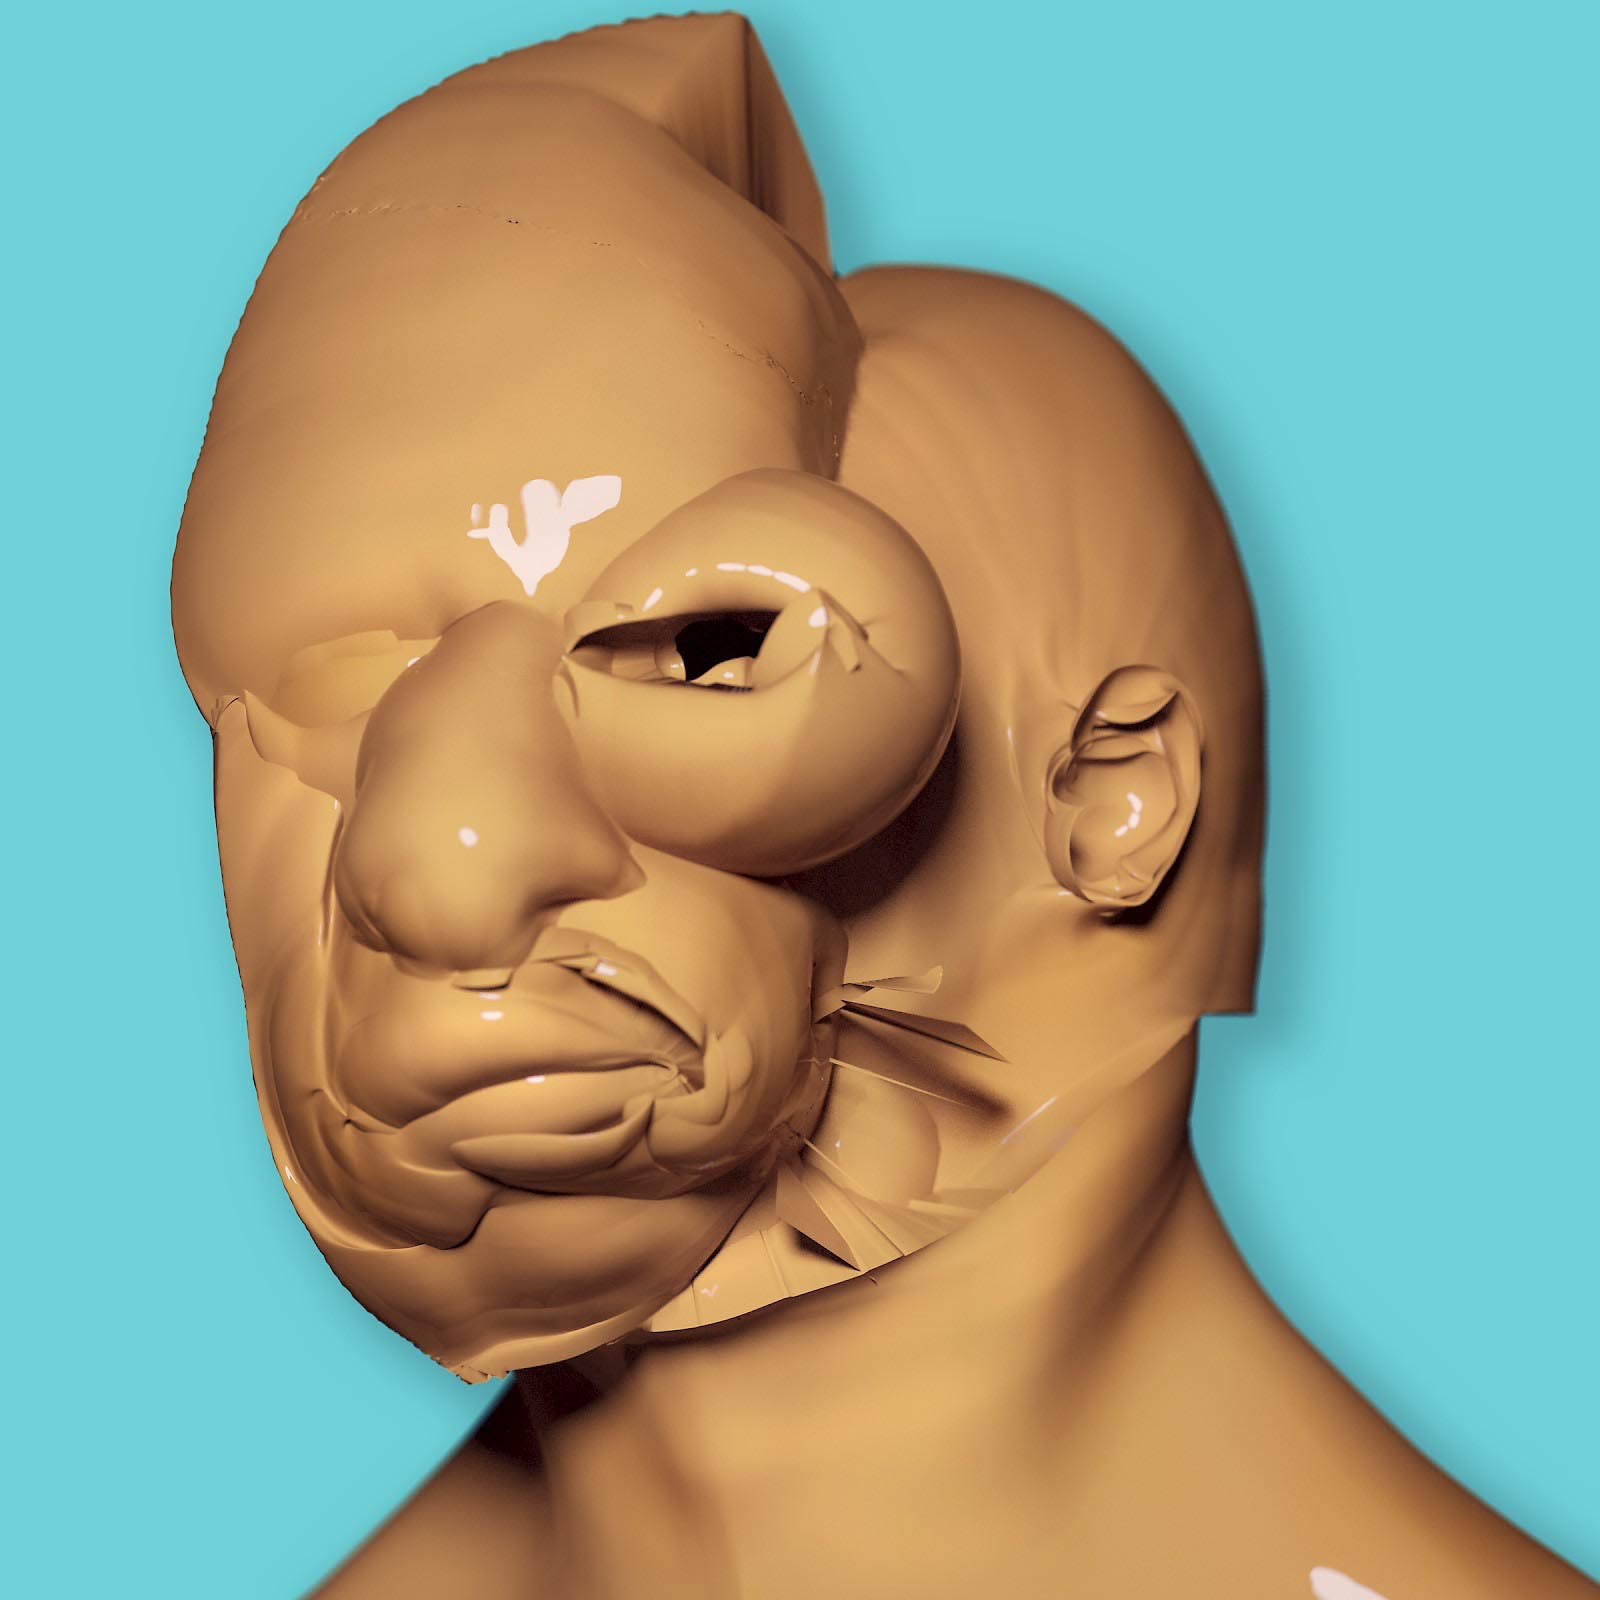 Botox Head Character Render Comic Blob Freeform Amorphous Bust Sculpture Displacement 3D